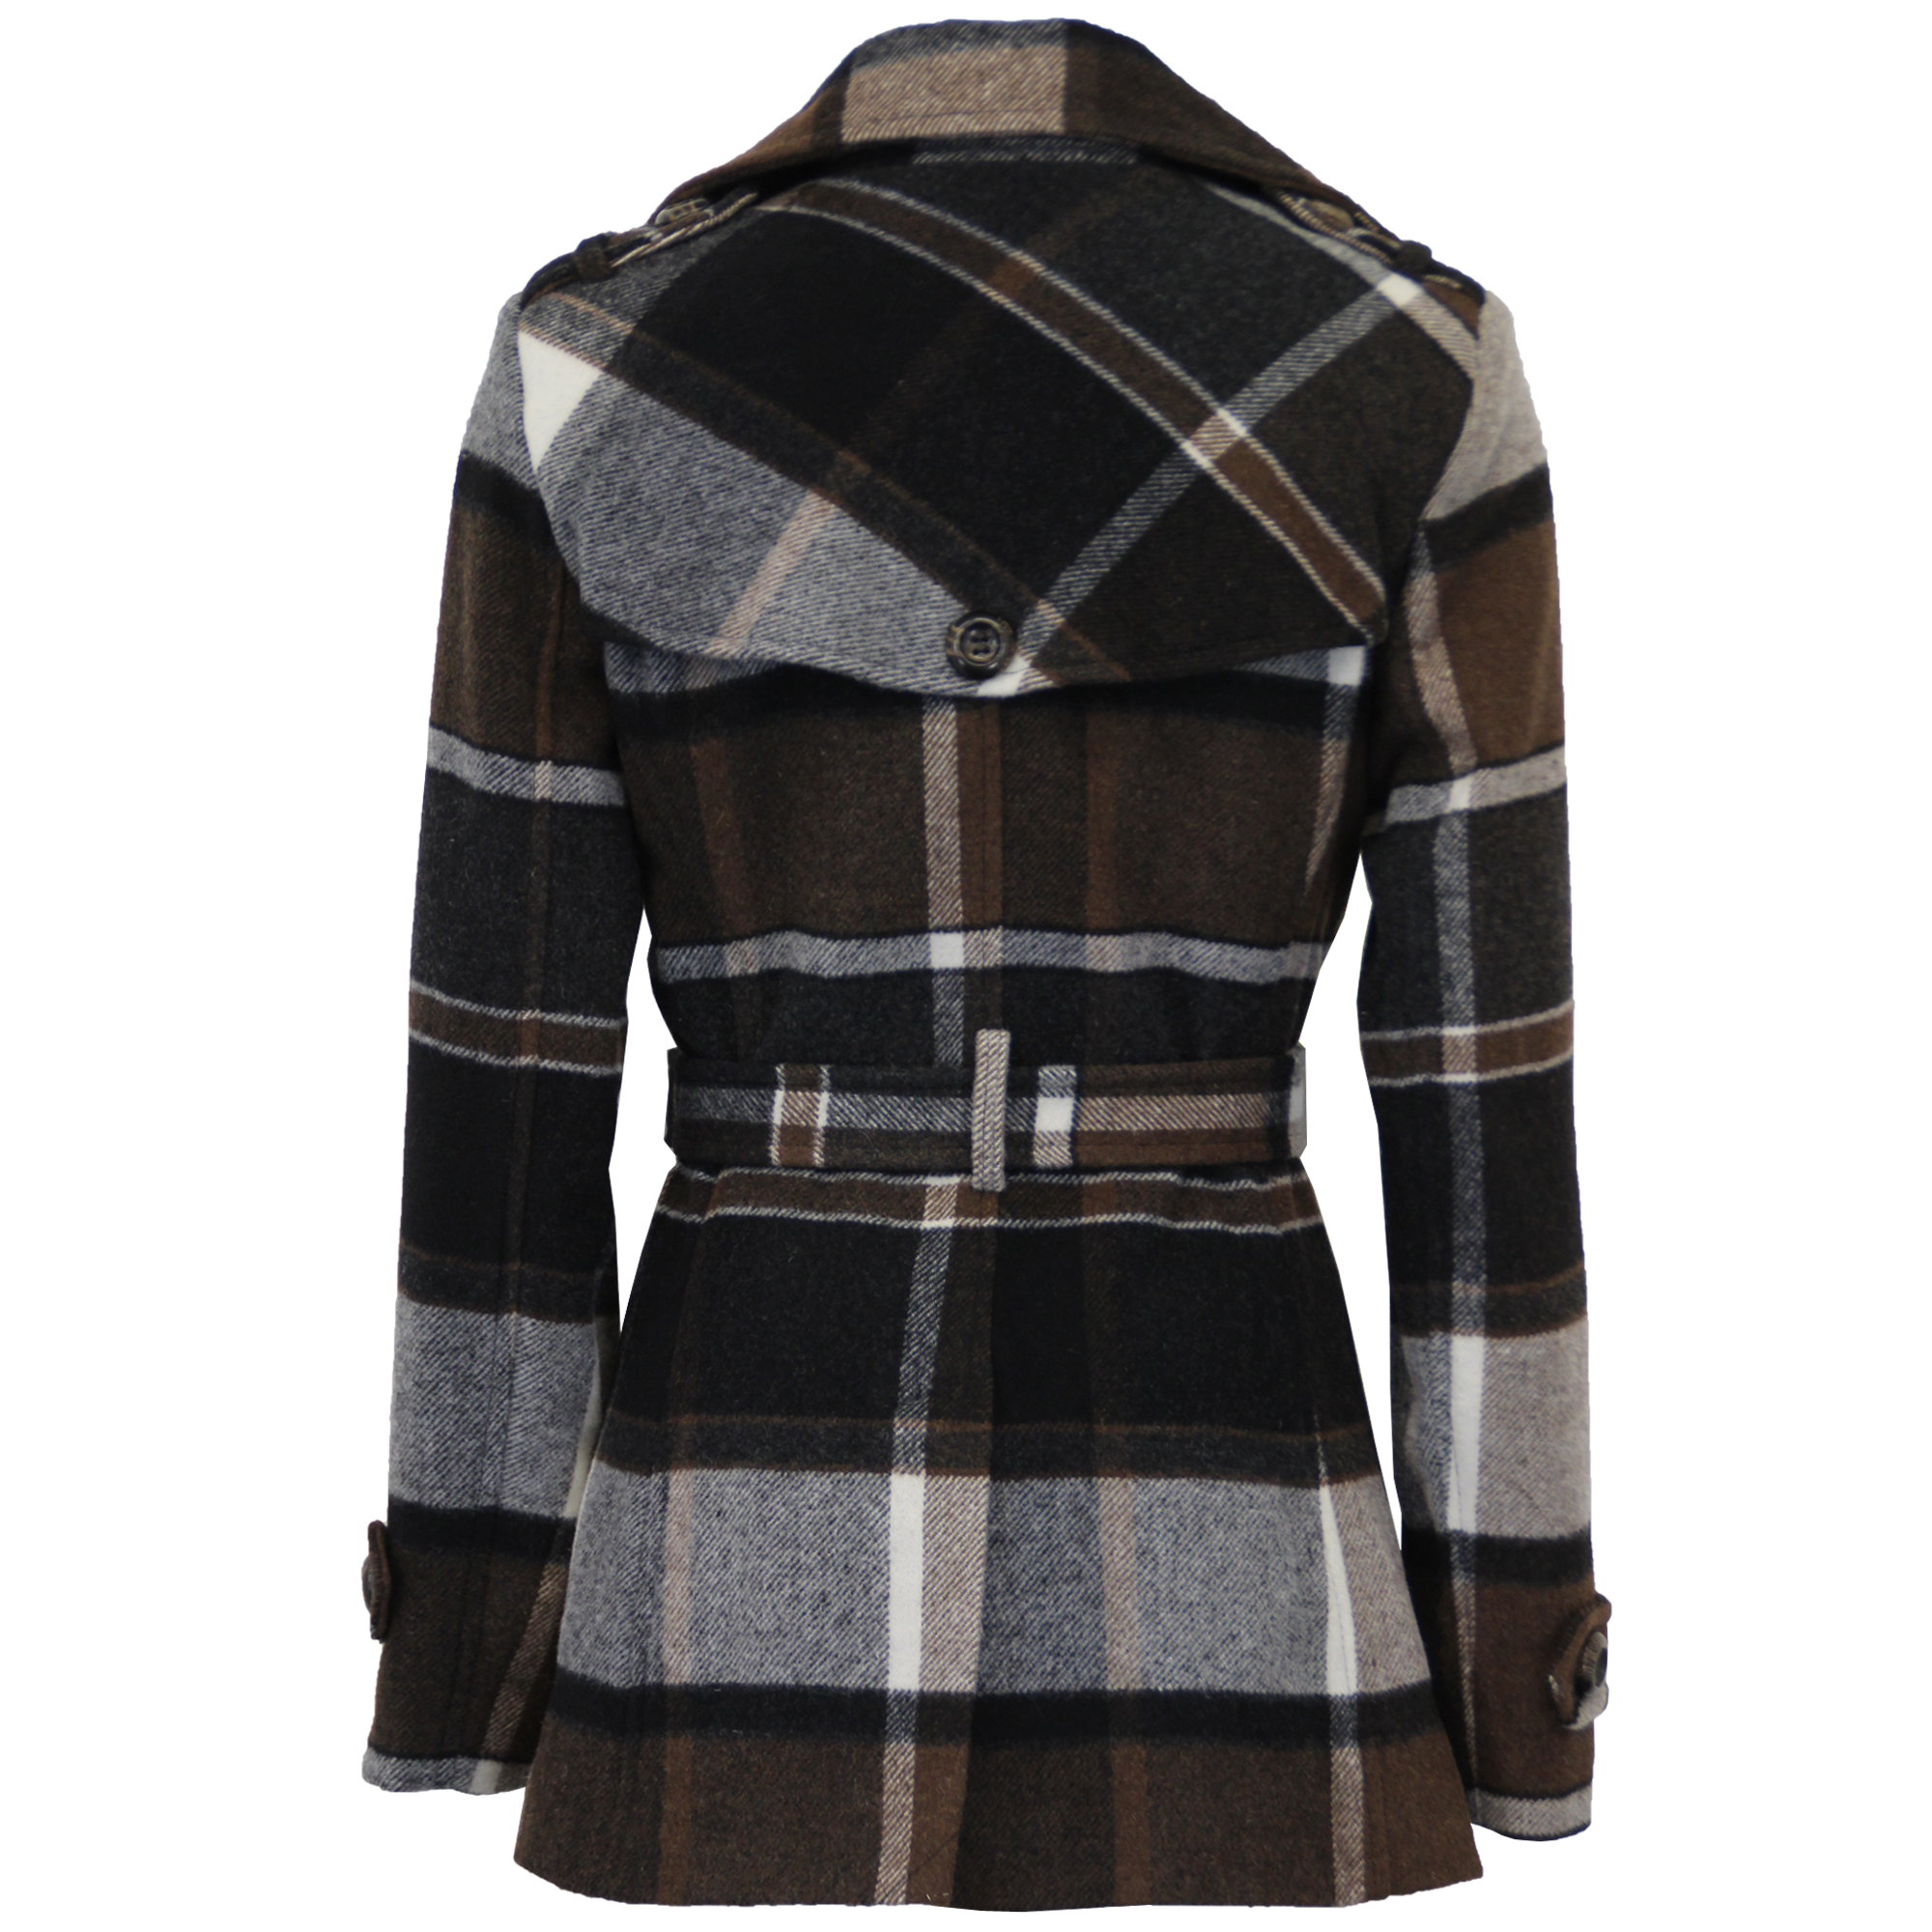 Ladies-Wool-Cashmere-Coat-Womens-Jacket-Double-Breasted-Belt-Checked-Trench-New thumbnail 6